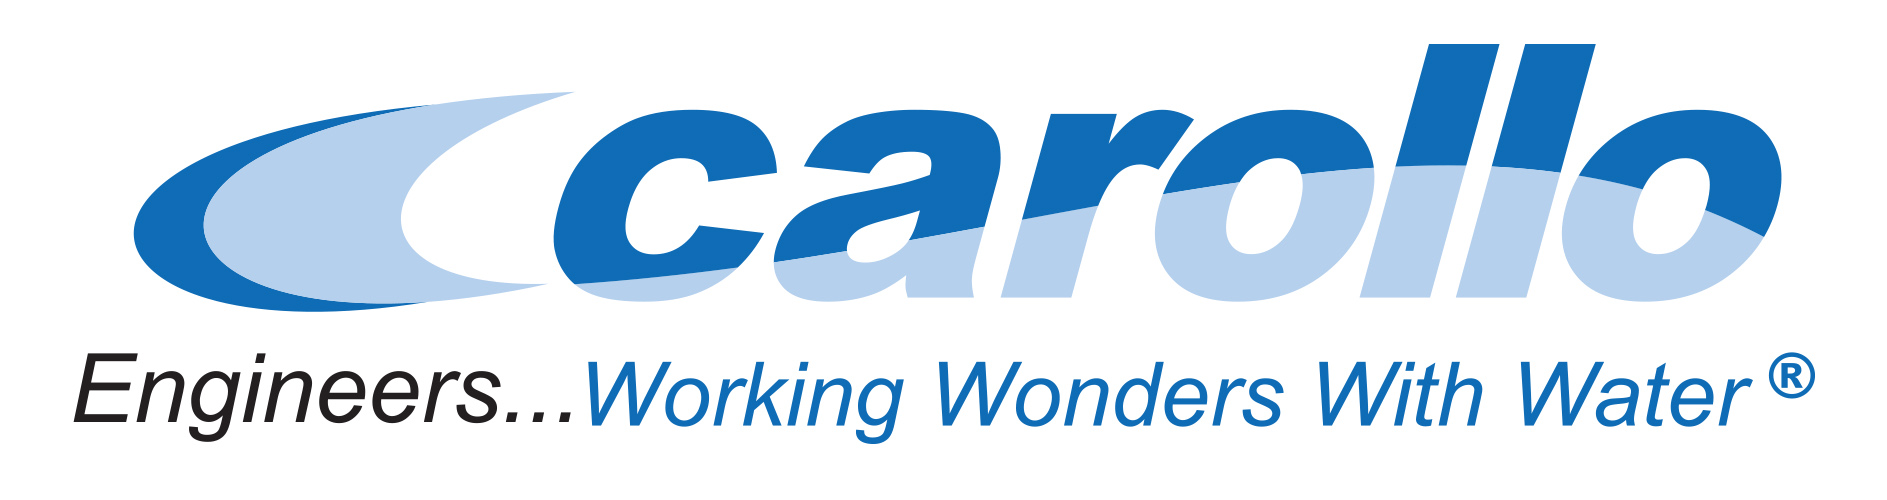 Carollo Engineers Logo